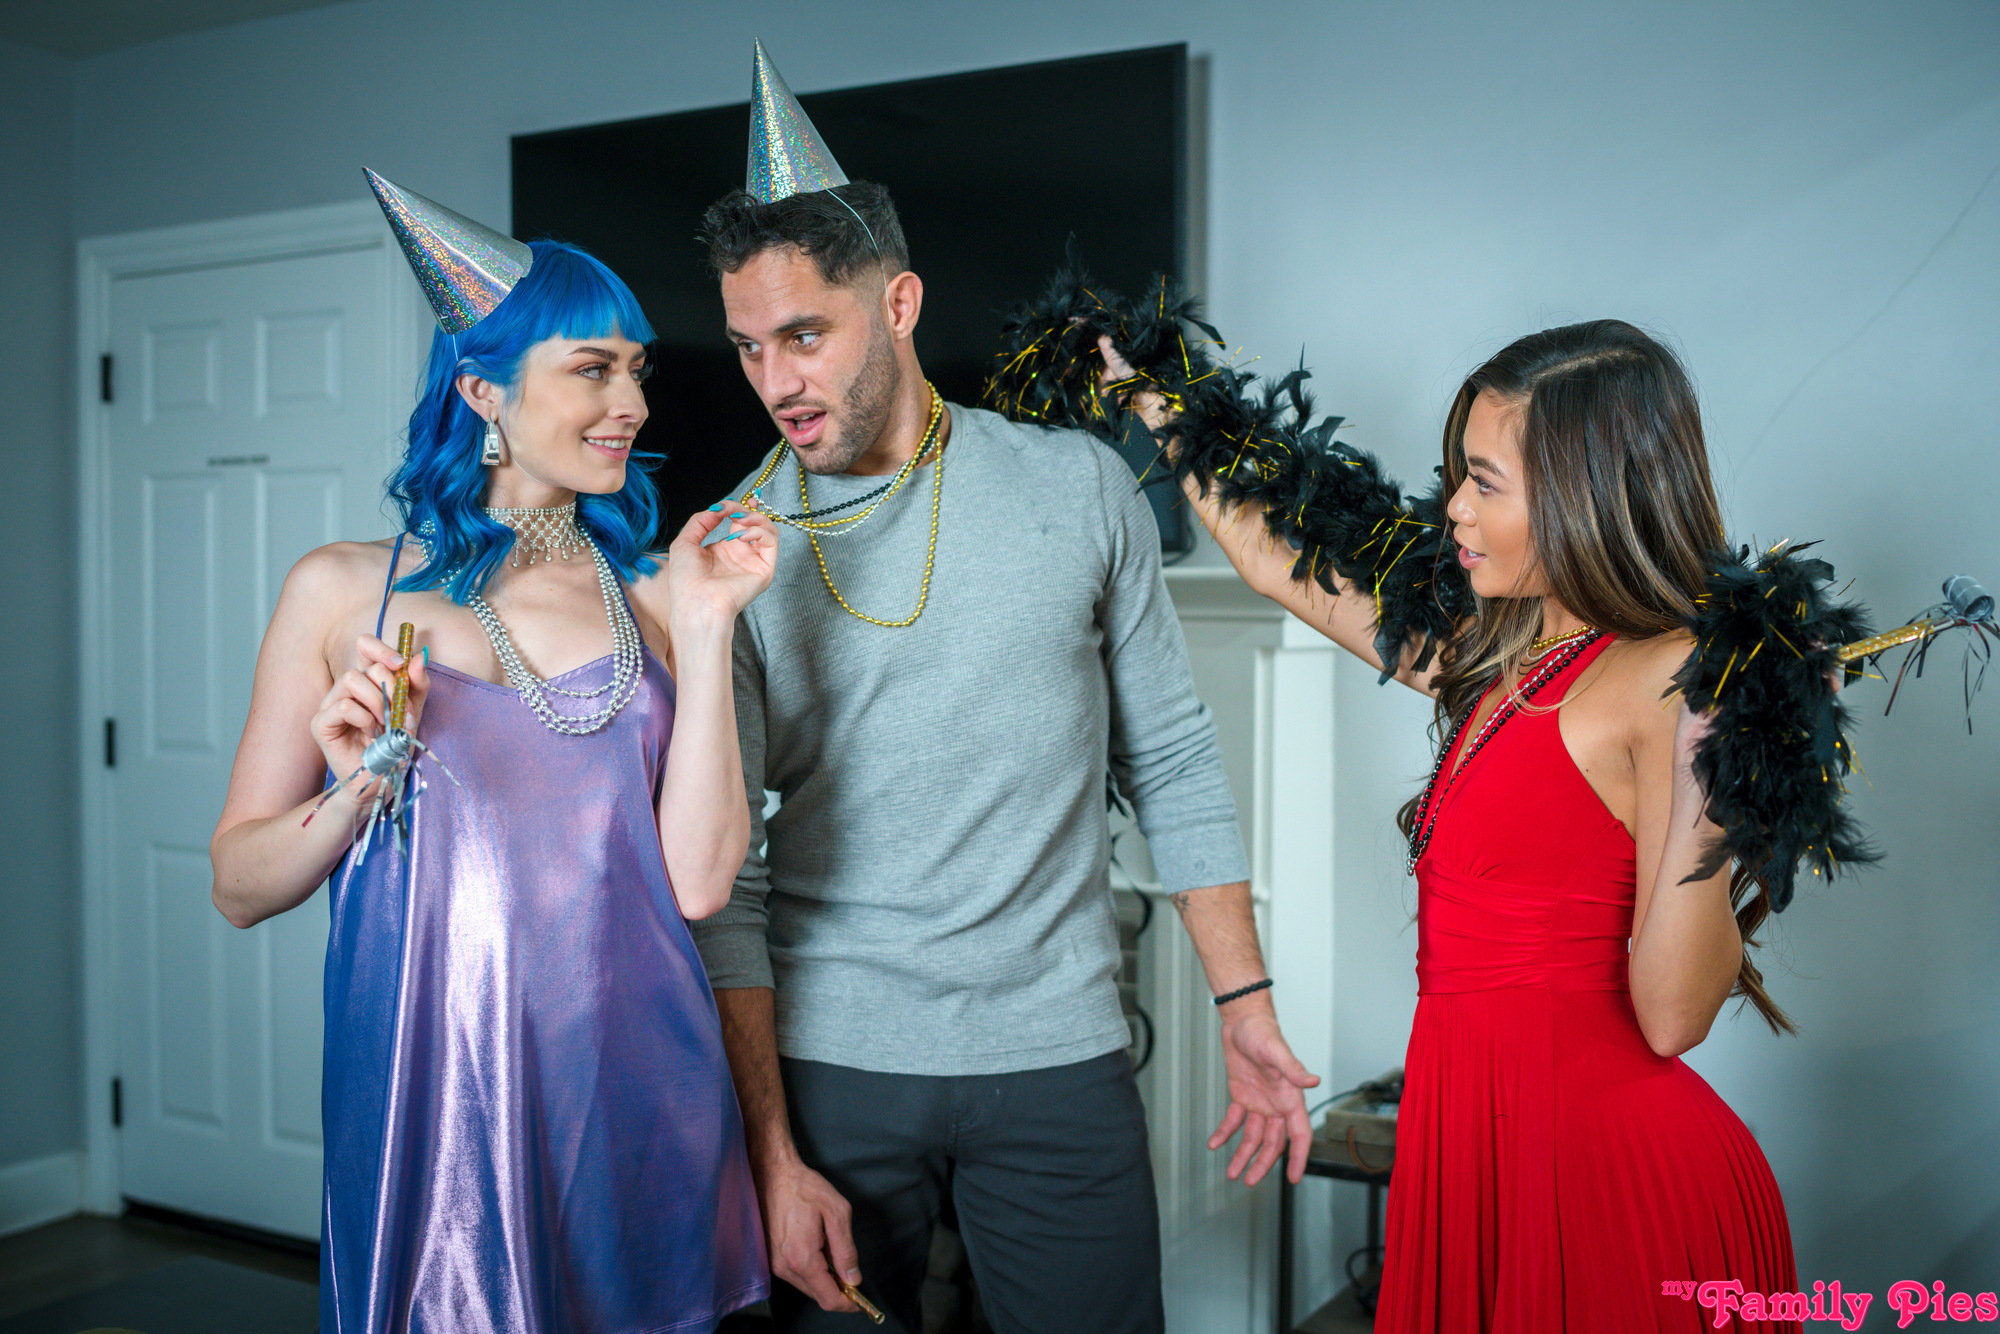 new_years_eve_with_my_step_family_004.jpg